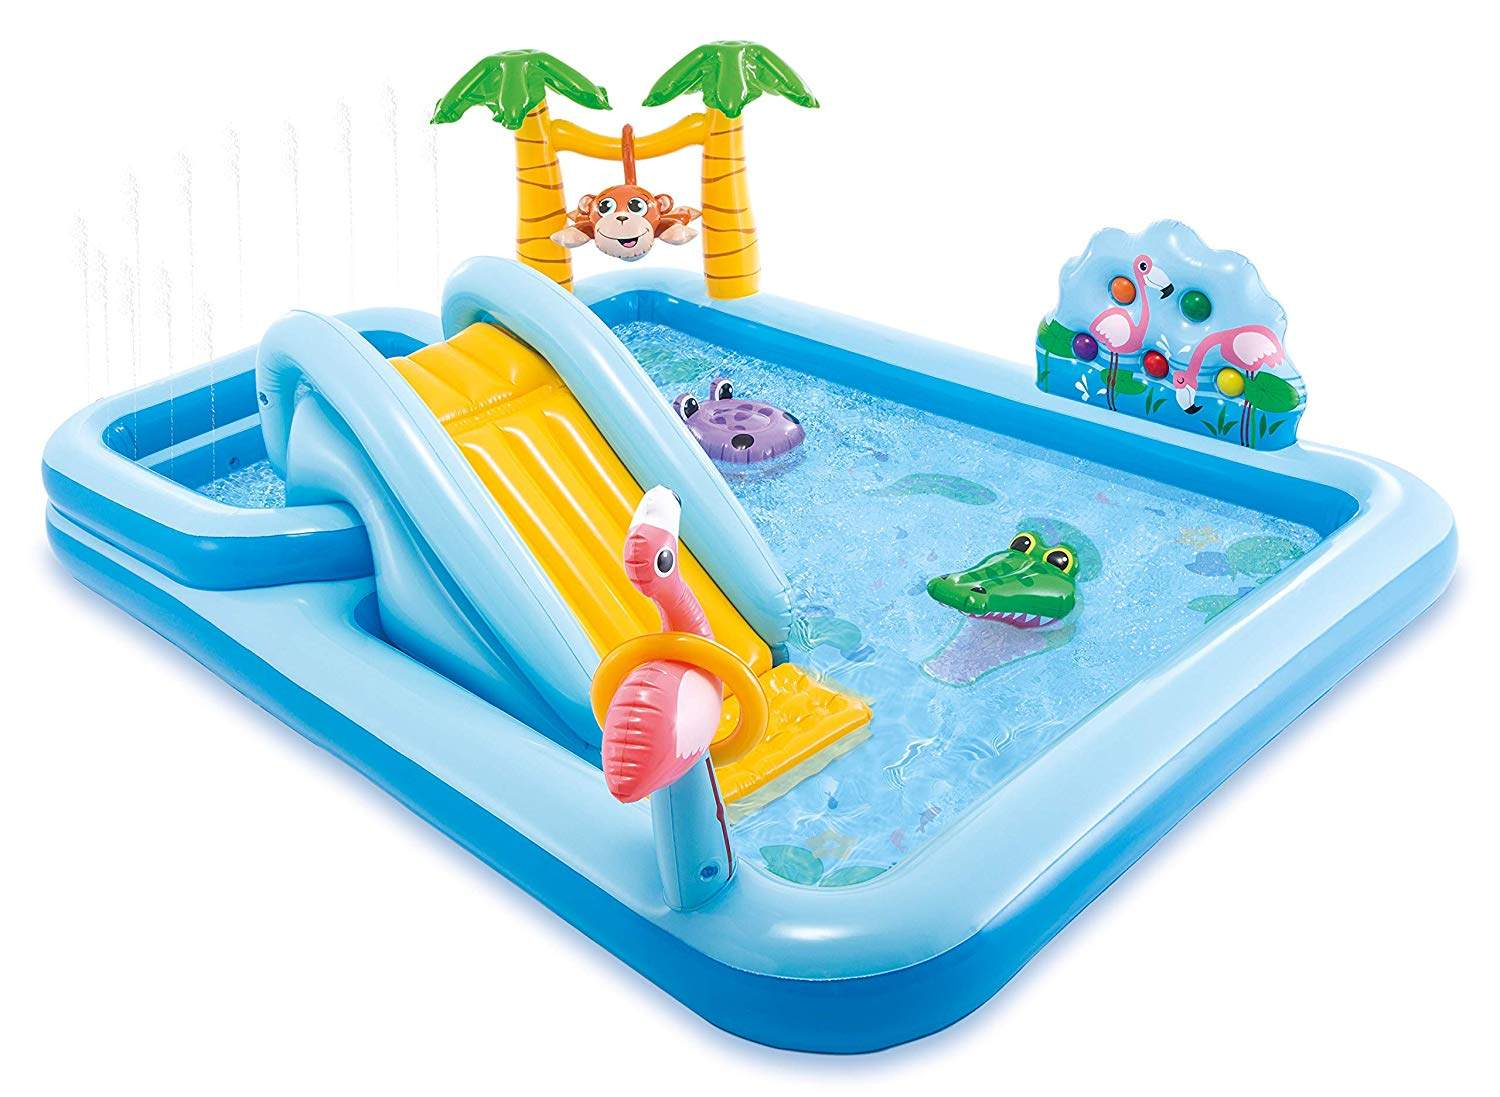 Piscine Pour Enfants Intex 57161 Jungle Adventure Play Center tout Piscine Intex Enfant